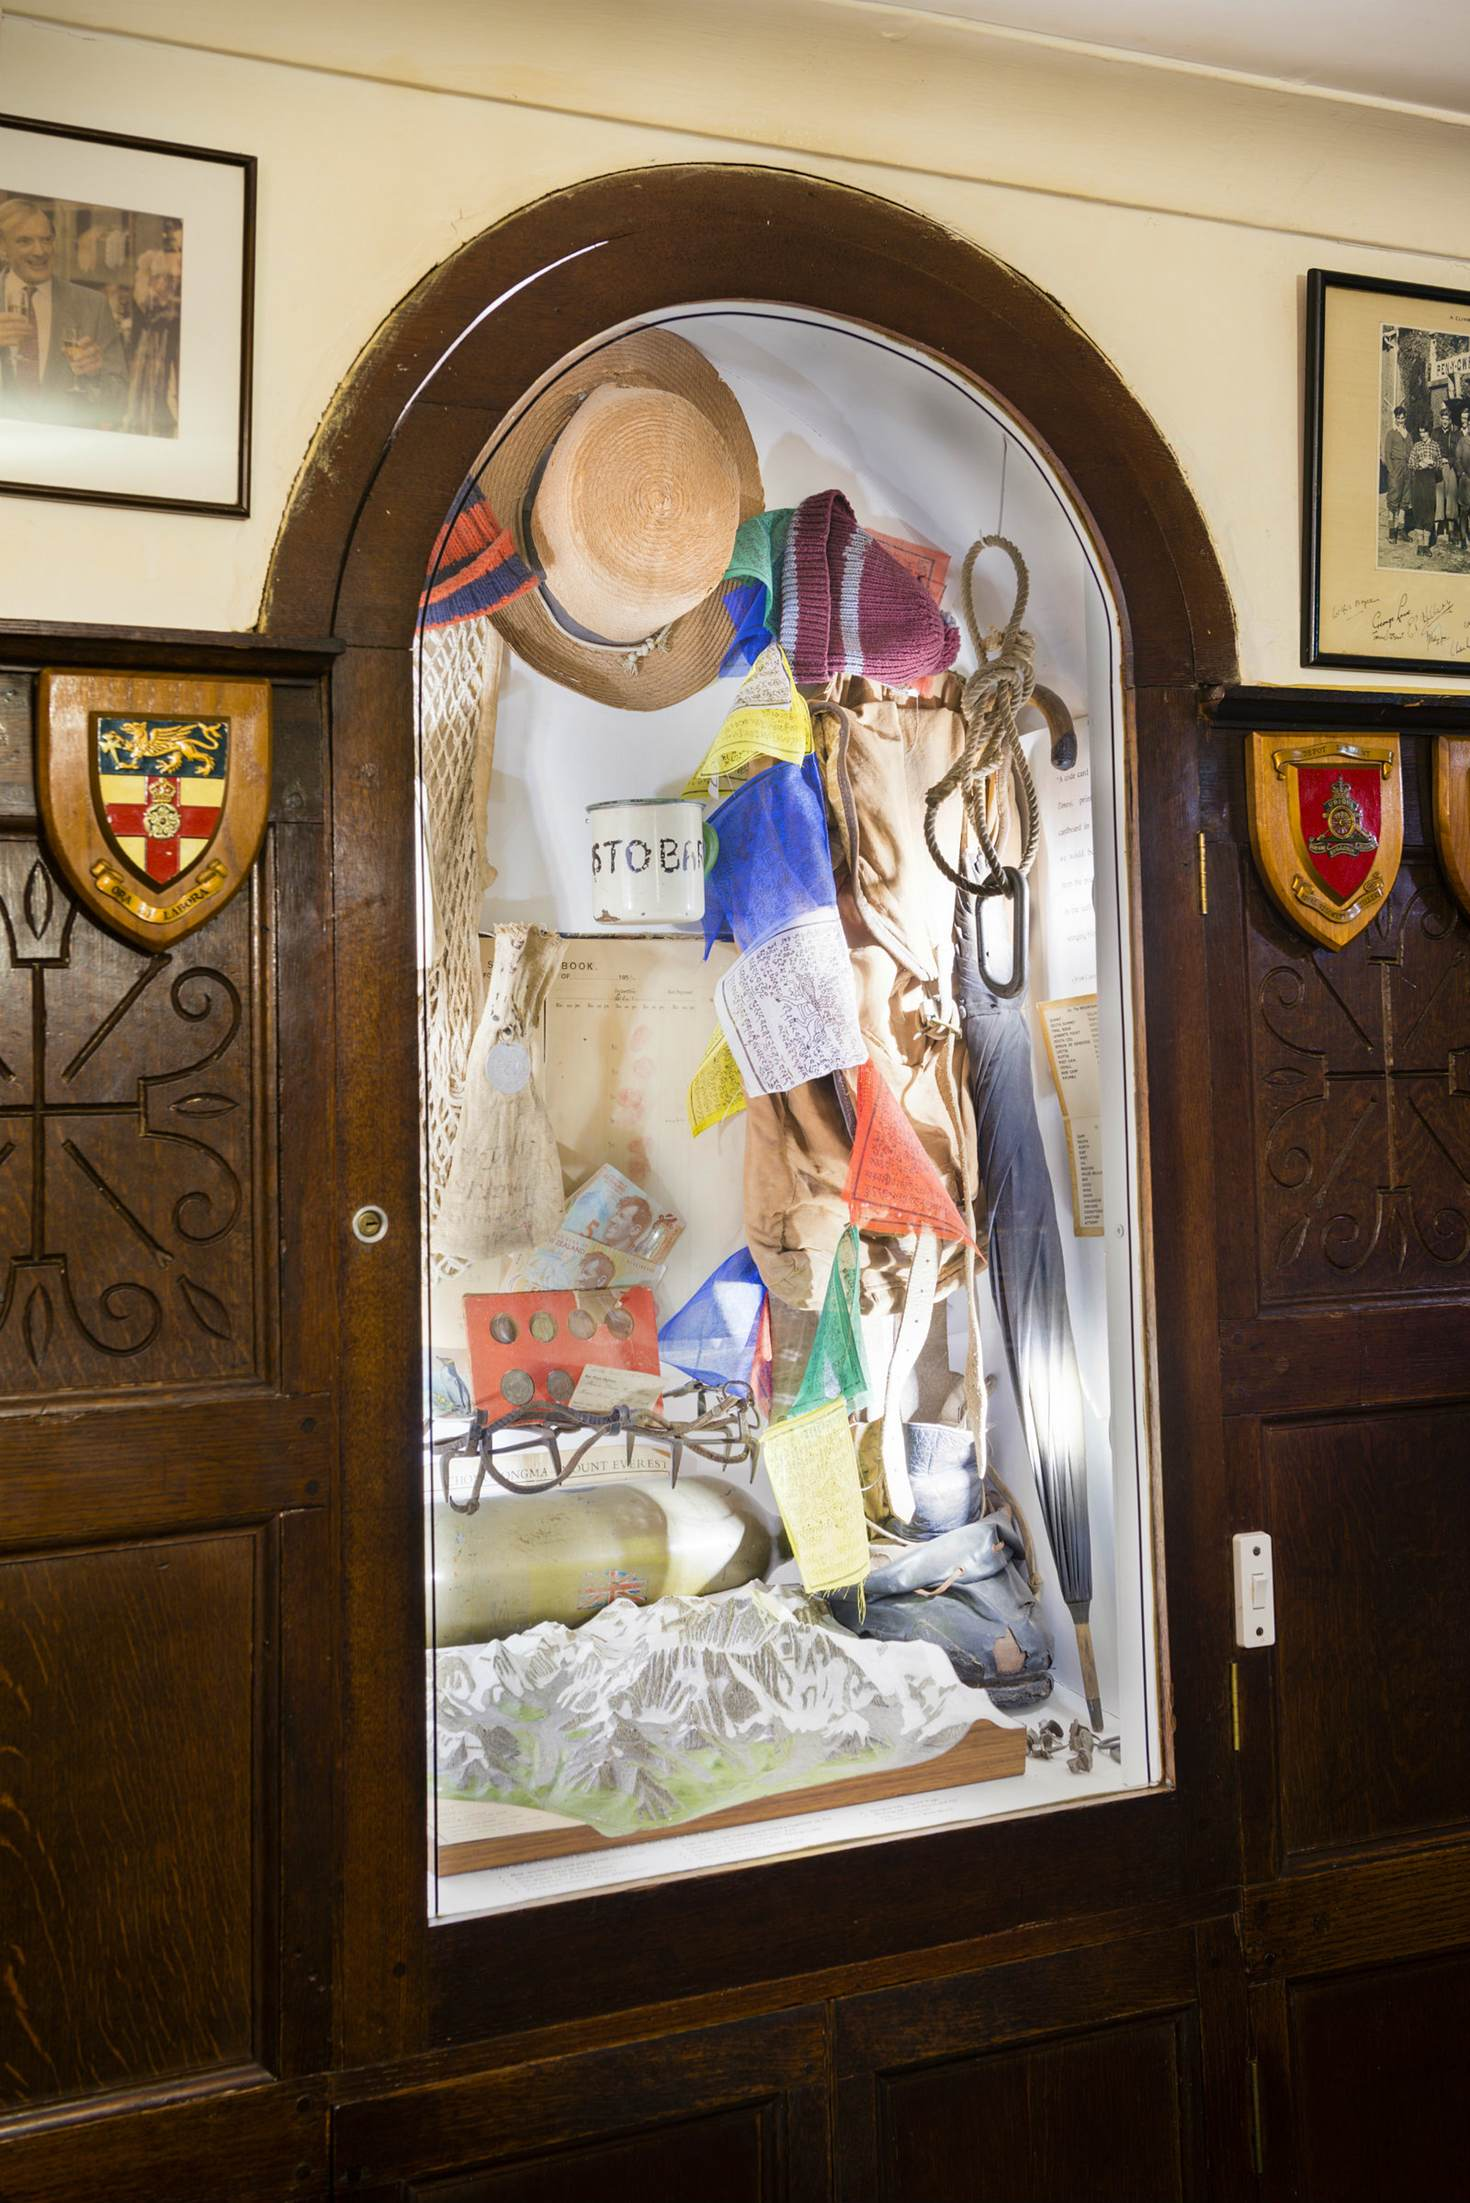 Everest memorabilia in the Pen-y-Gwryd Hotel © Justin Foulkes / Lonely Planet